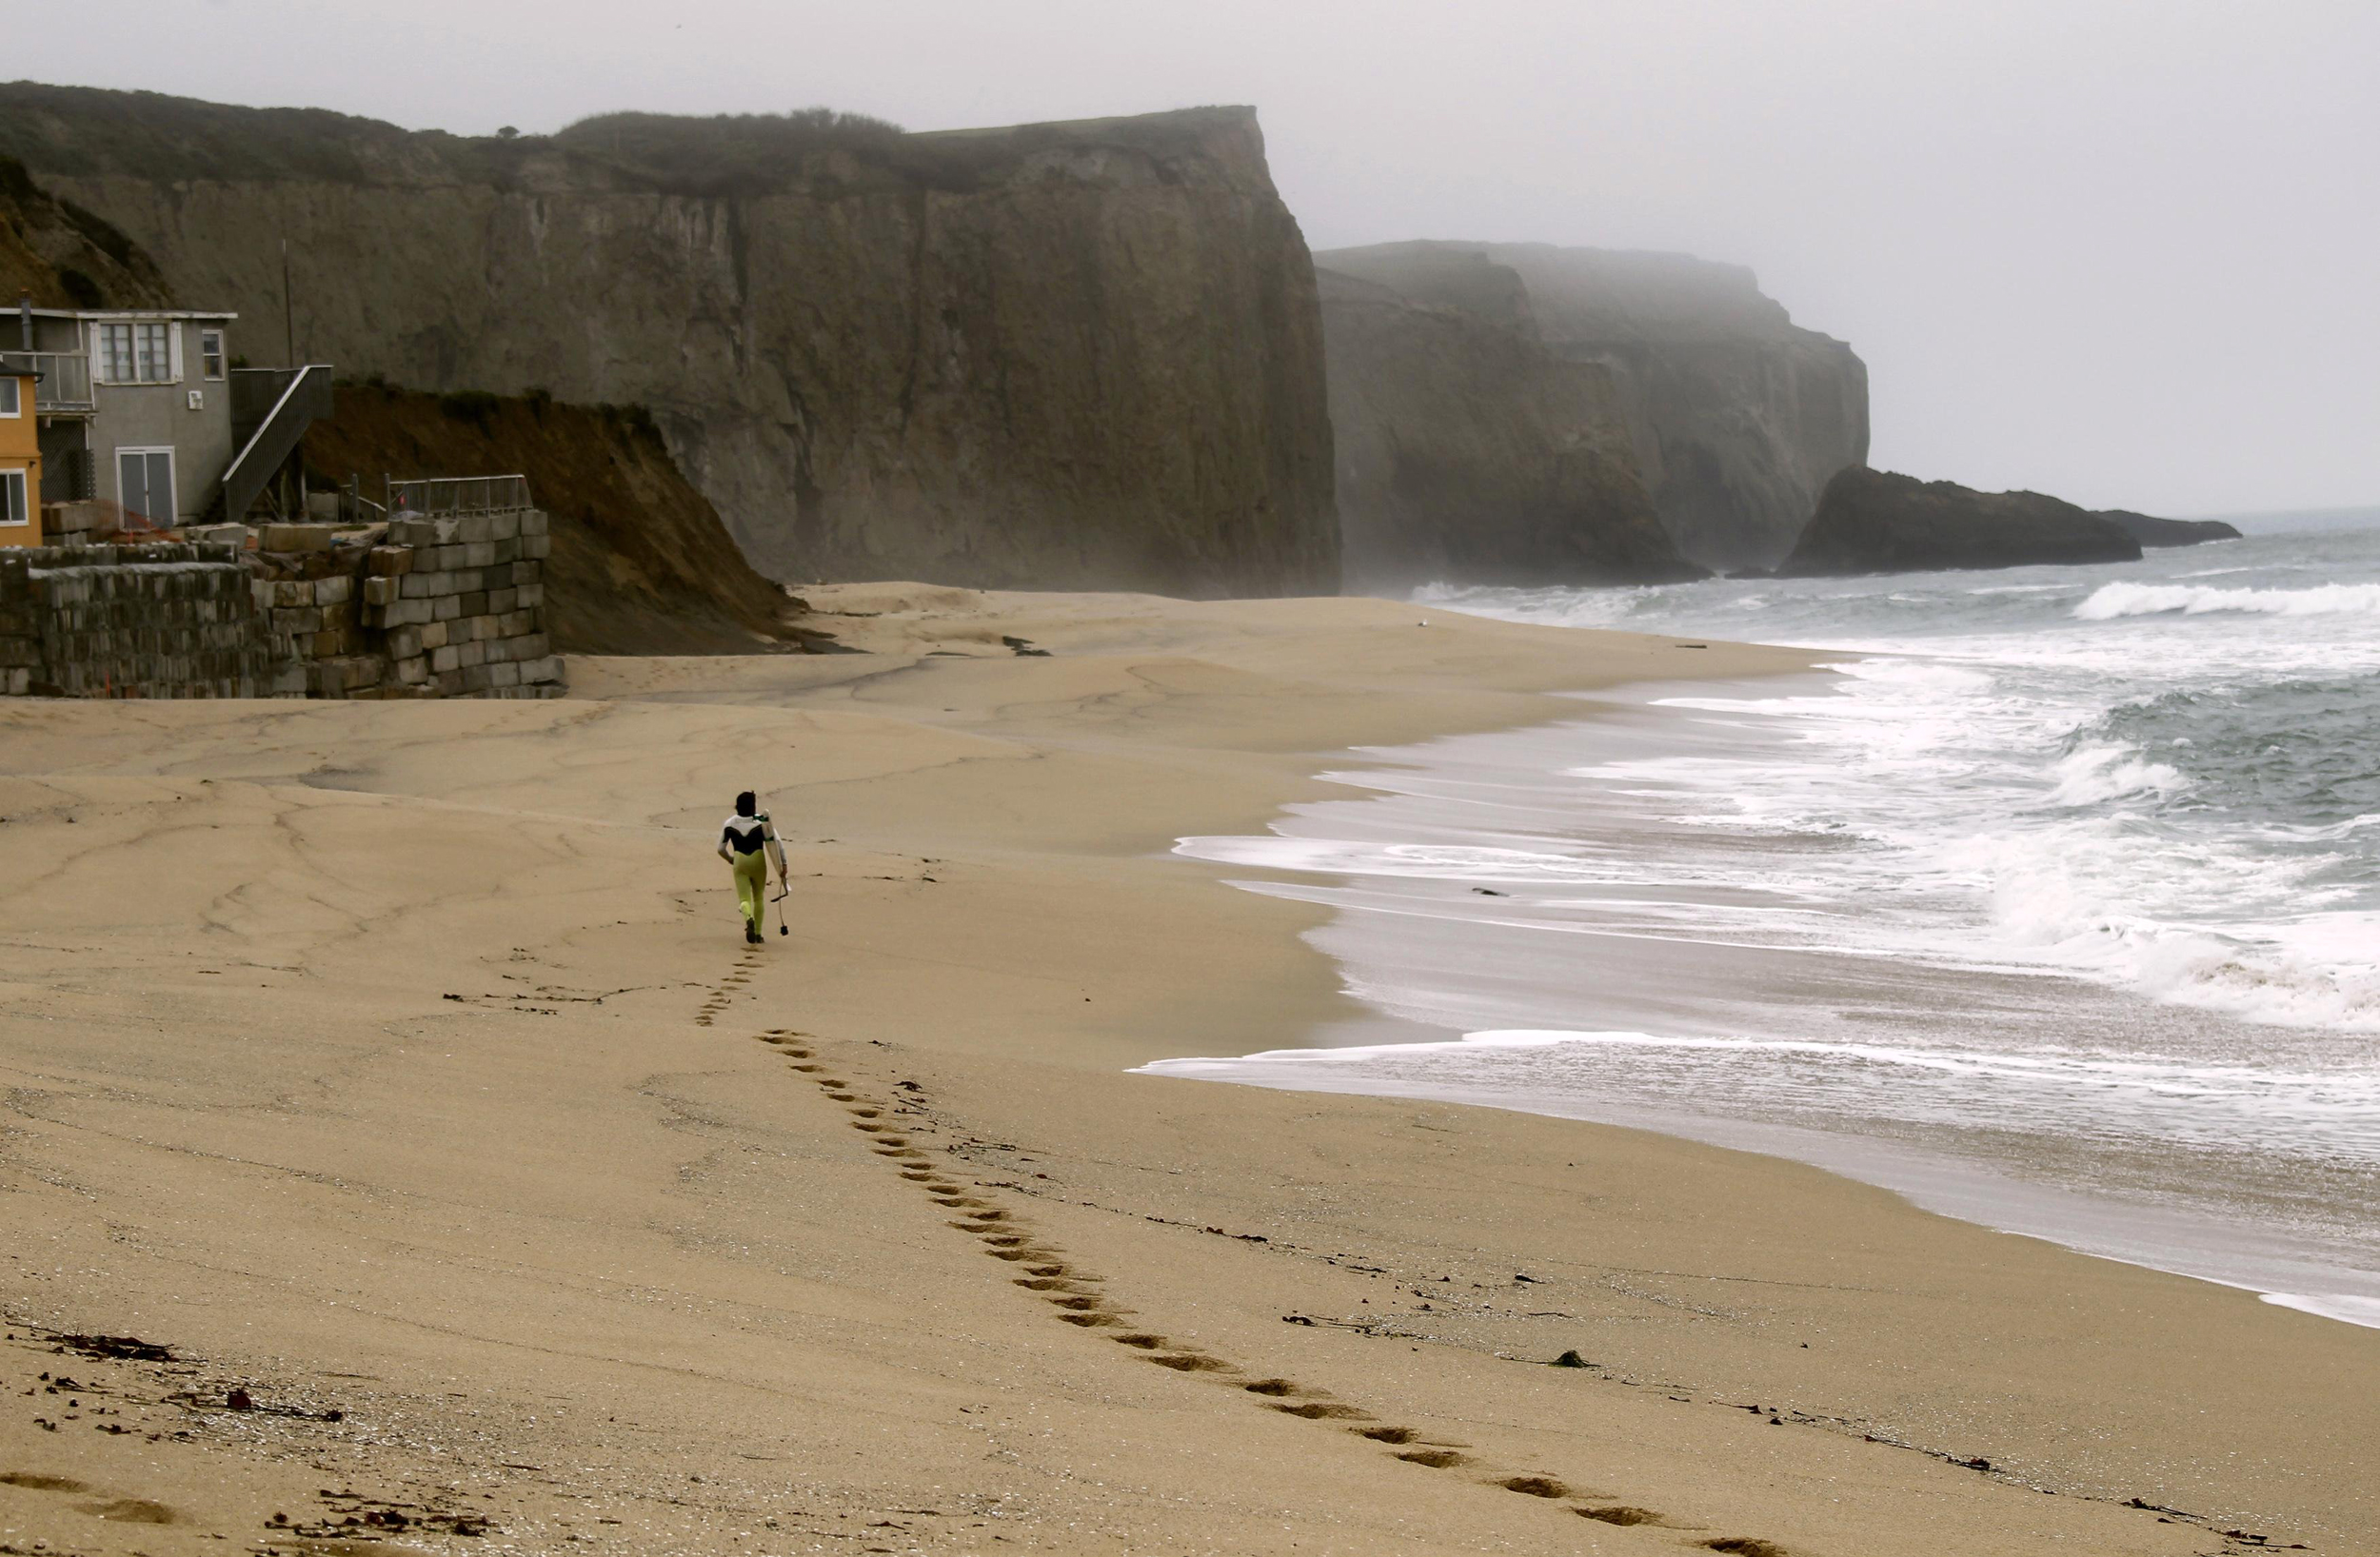 California Court Tells Billionaire to Reopen Beloved Beach